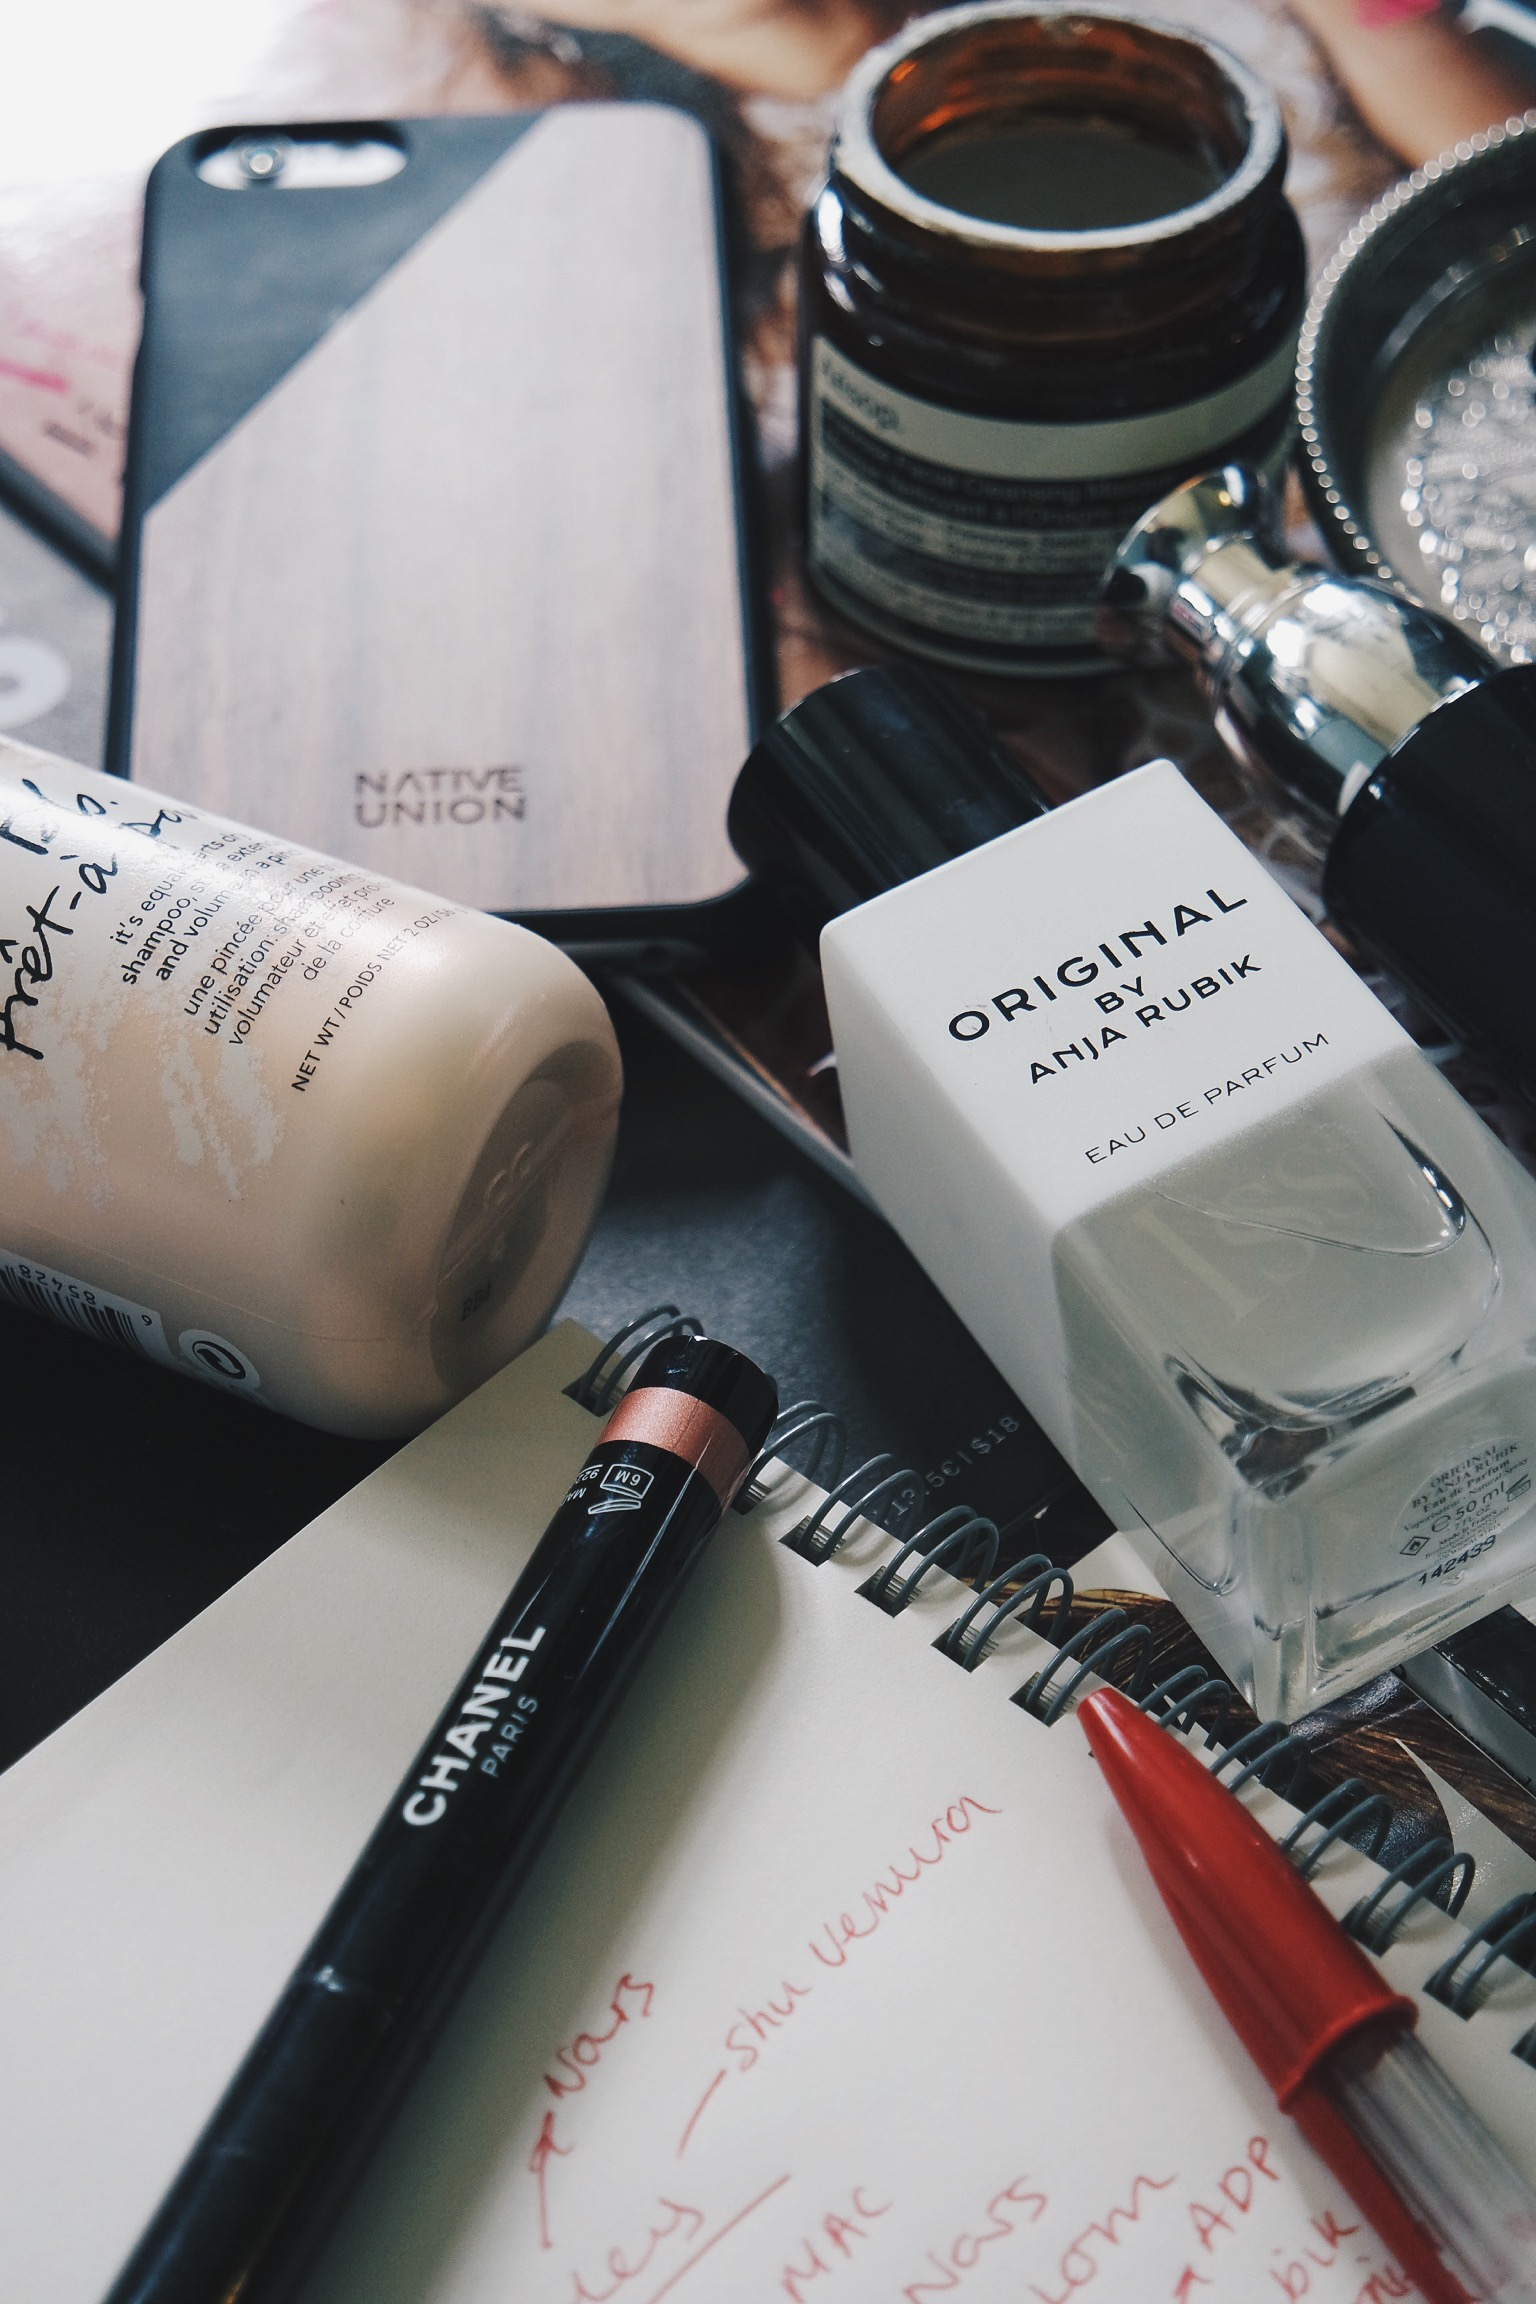 THATGRACEGIRL | 11 BEAUTY PRODUCTS EVERY 20-SOMETHING SHOULD OWN